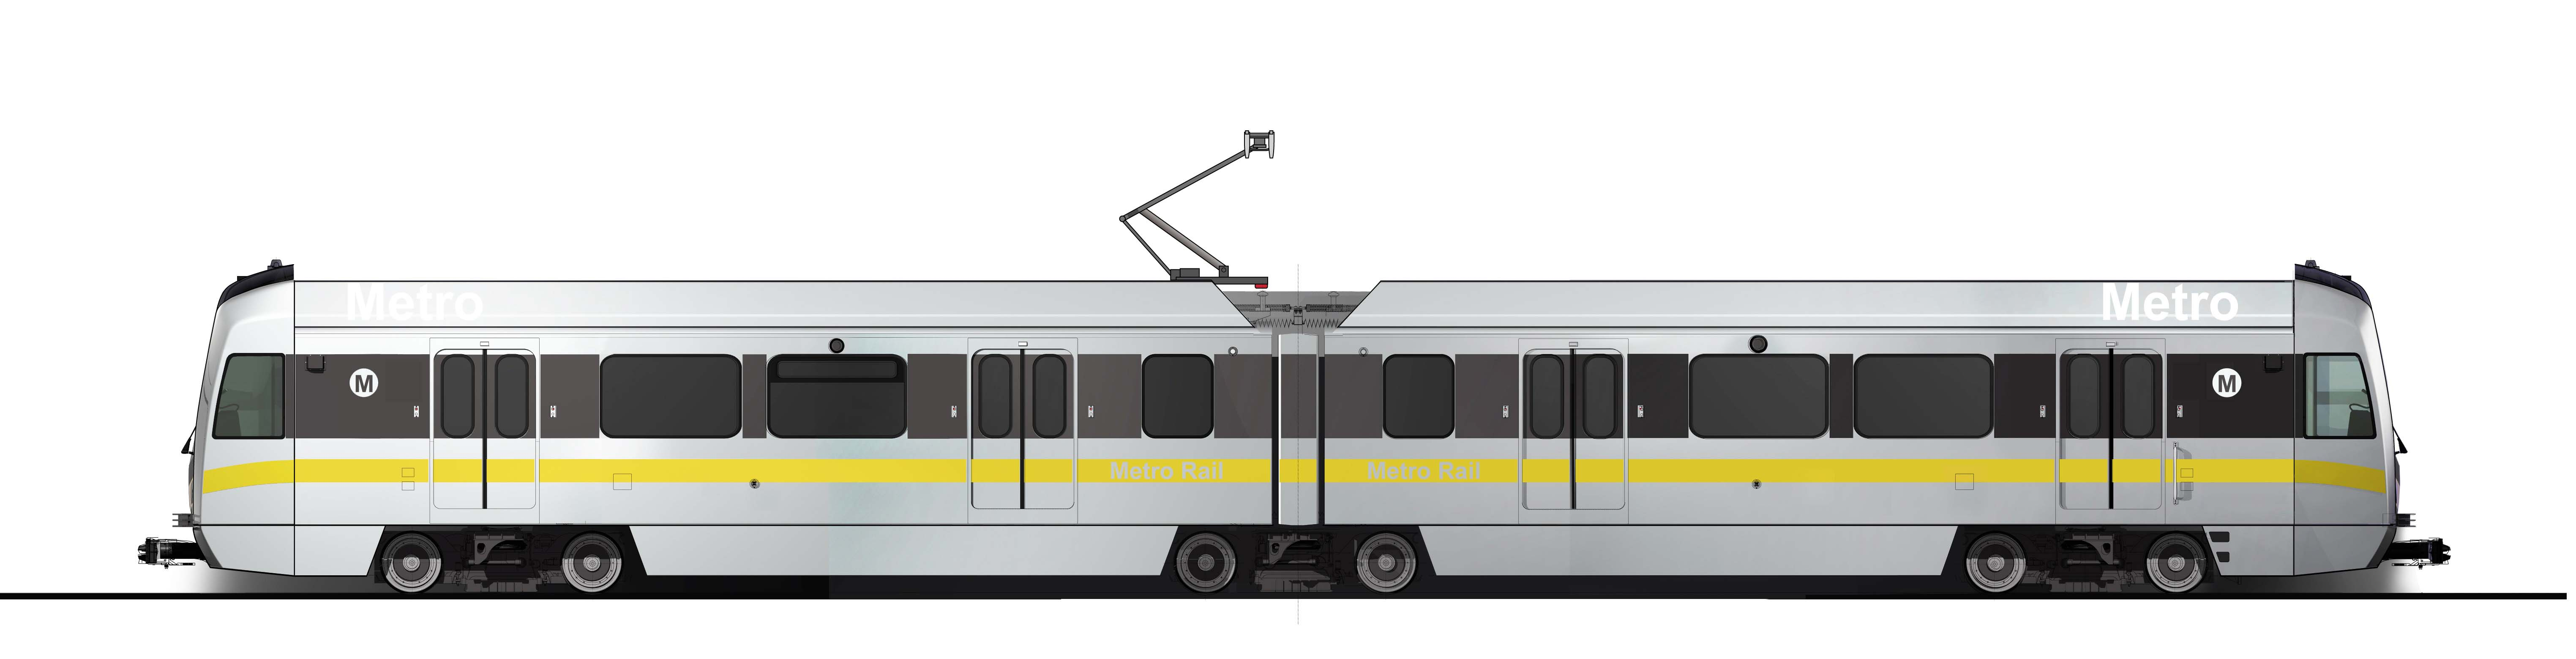 Metro Board Approves Contract To Purchase New Light Rail Cars The Source